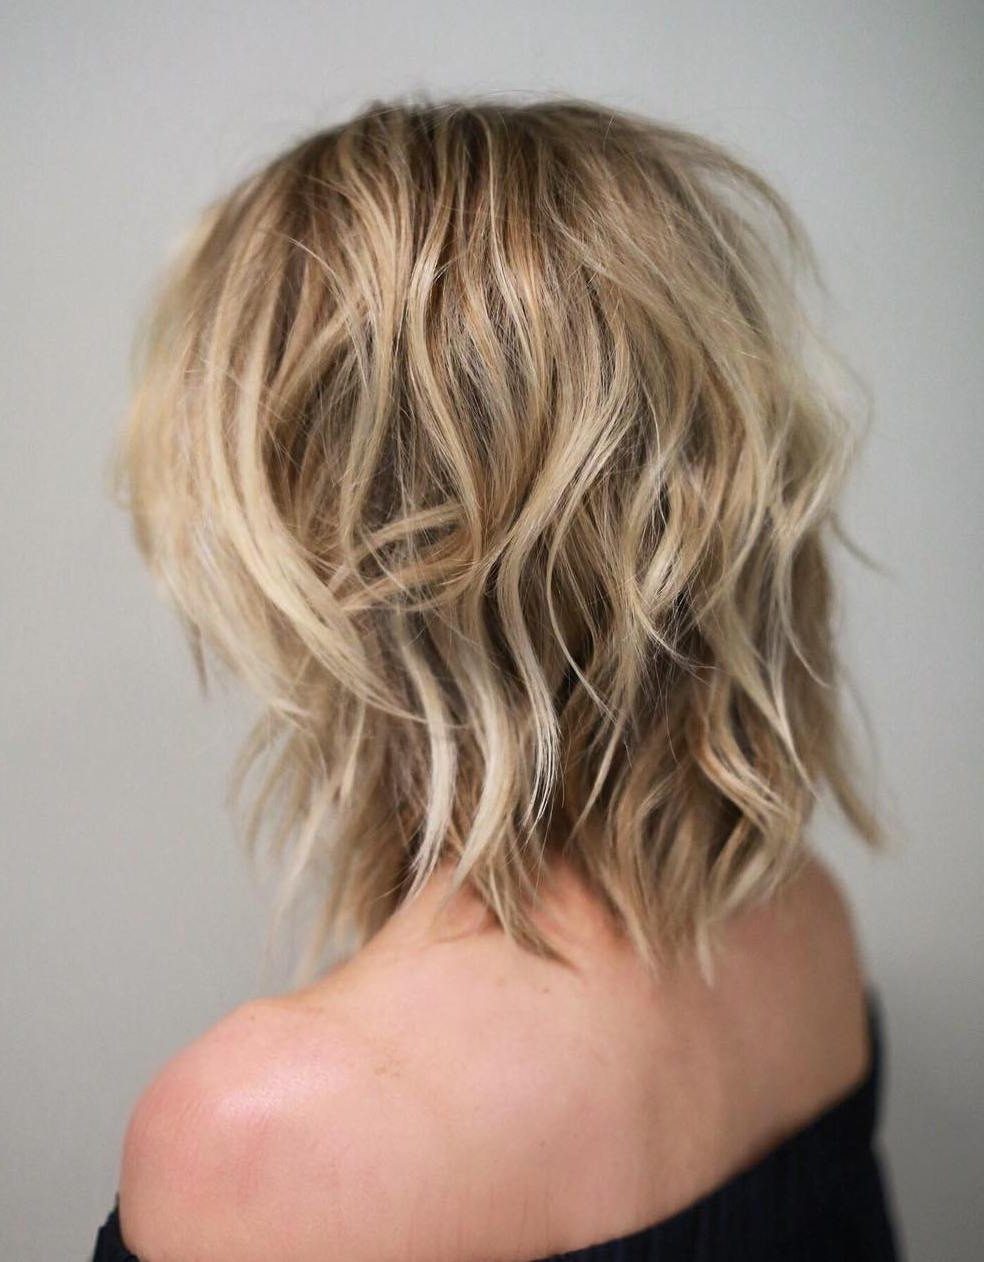 Famous Long Shag Haircuts With Extreme Layers With Shag Haircuts And Hairstyles In 2019 — Therighthairstyles (View 6 of 20)